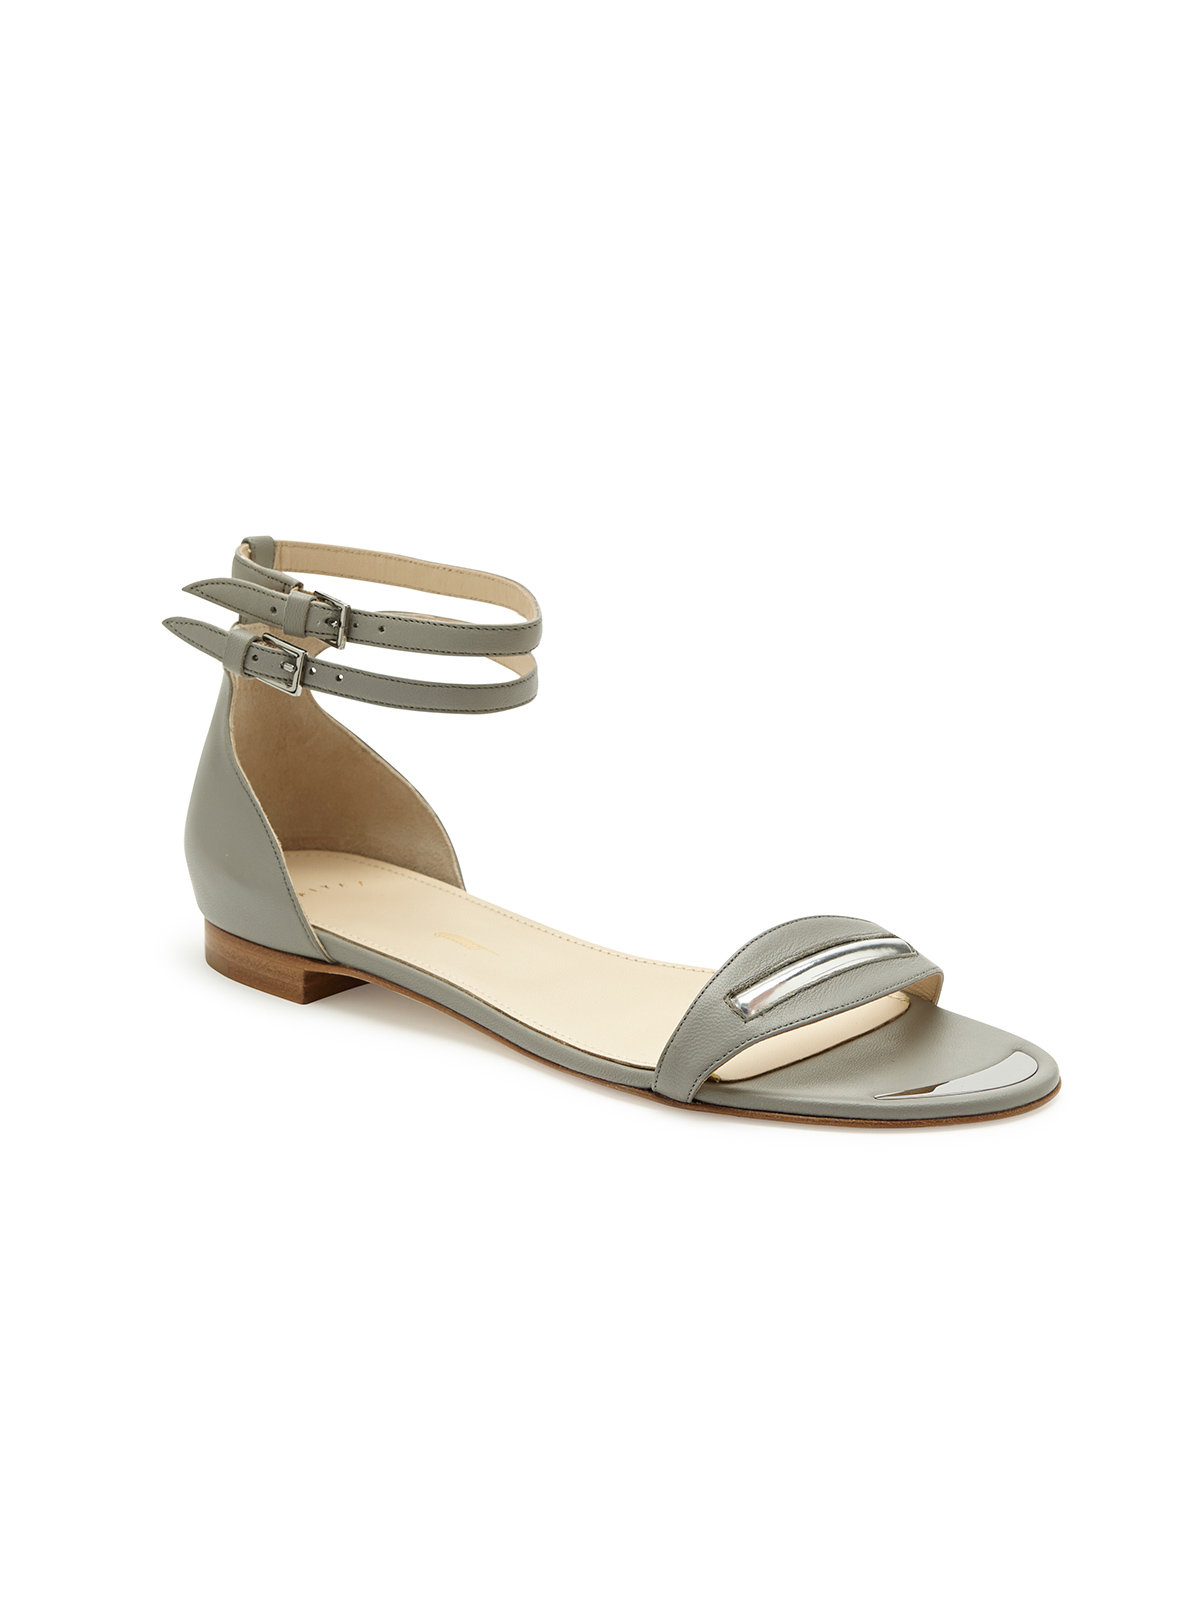 Double Strap Shoes For Women